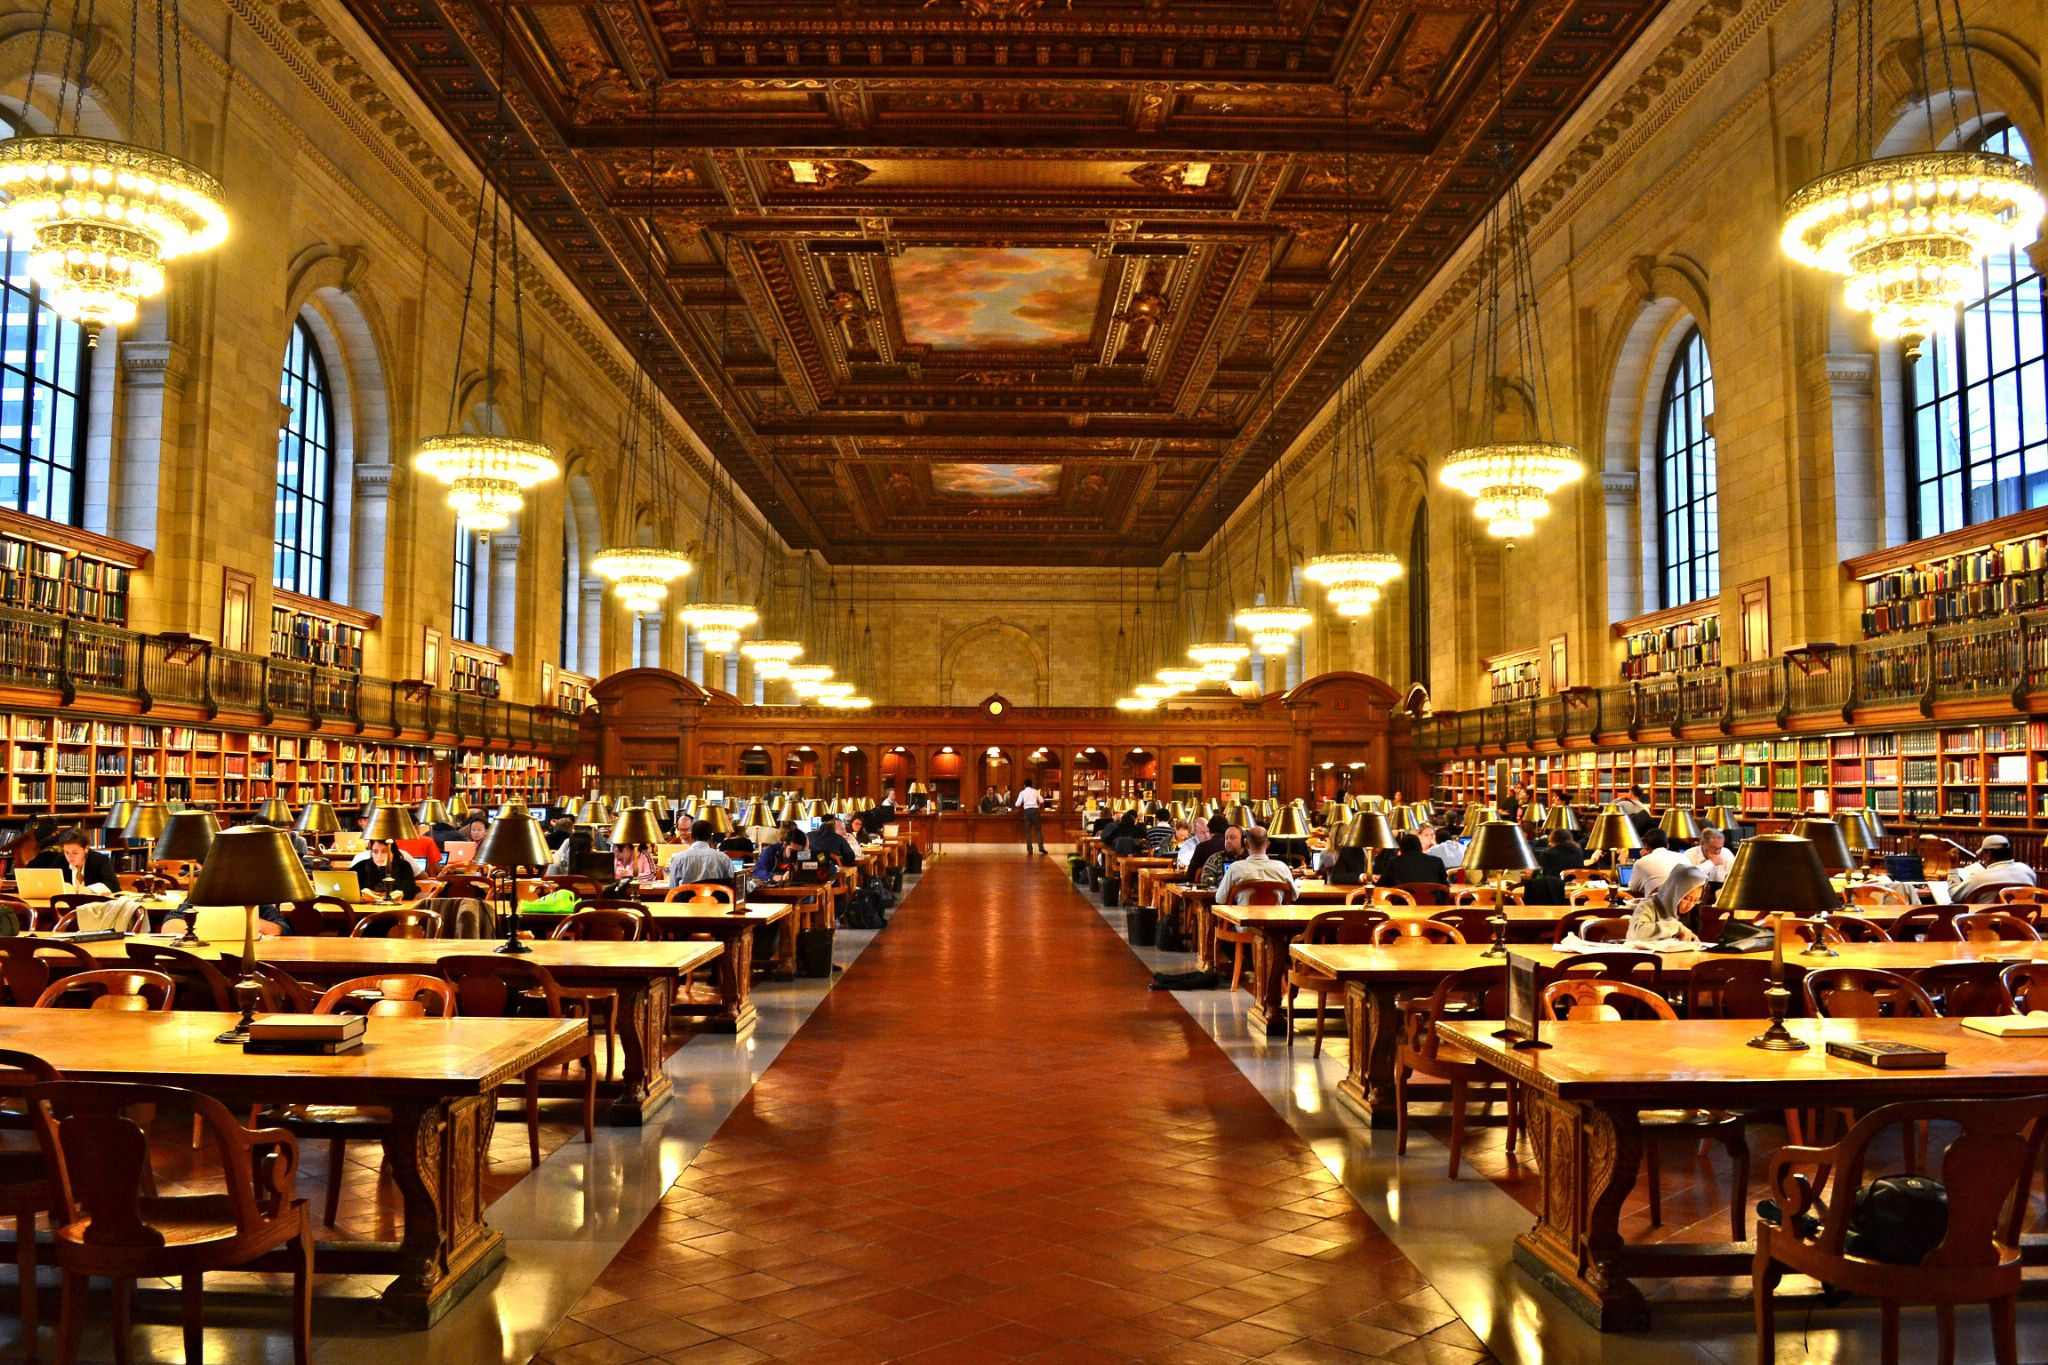 The New York Public Library by Frederico Domondon